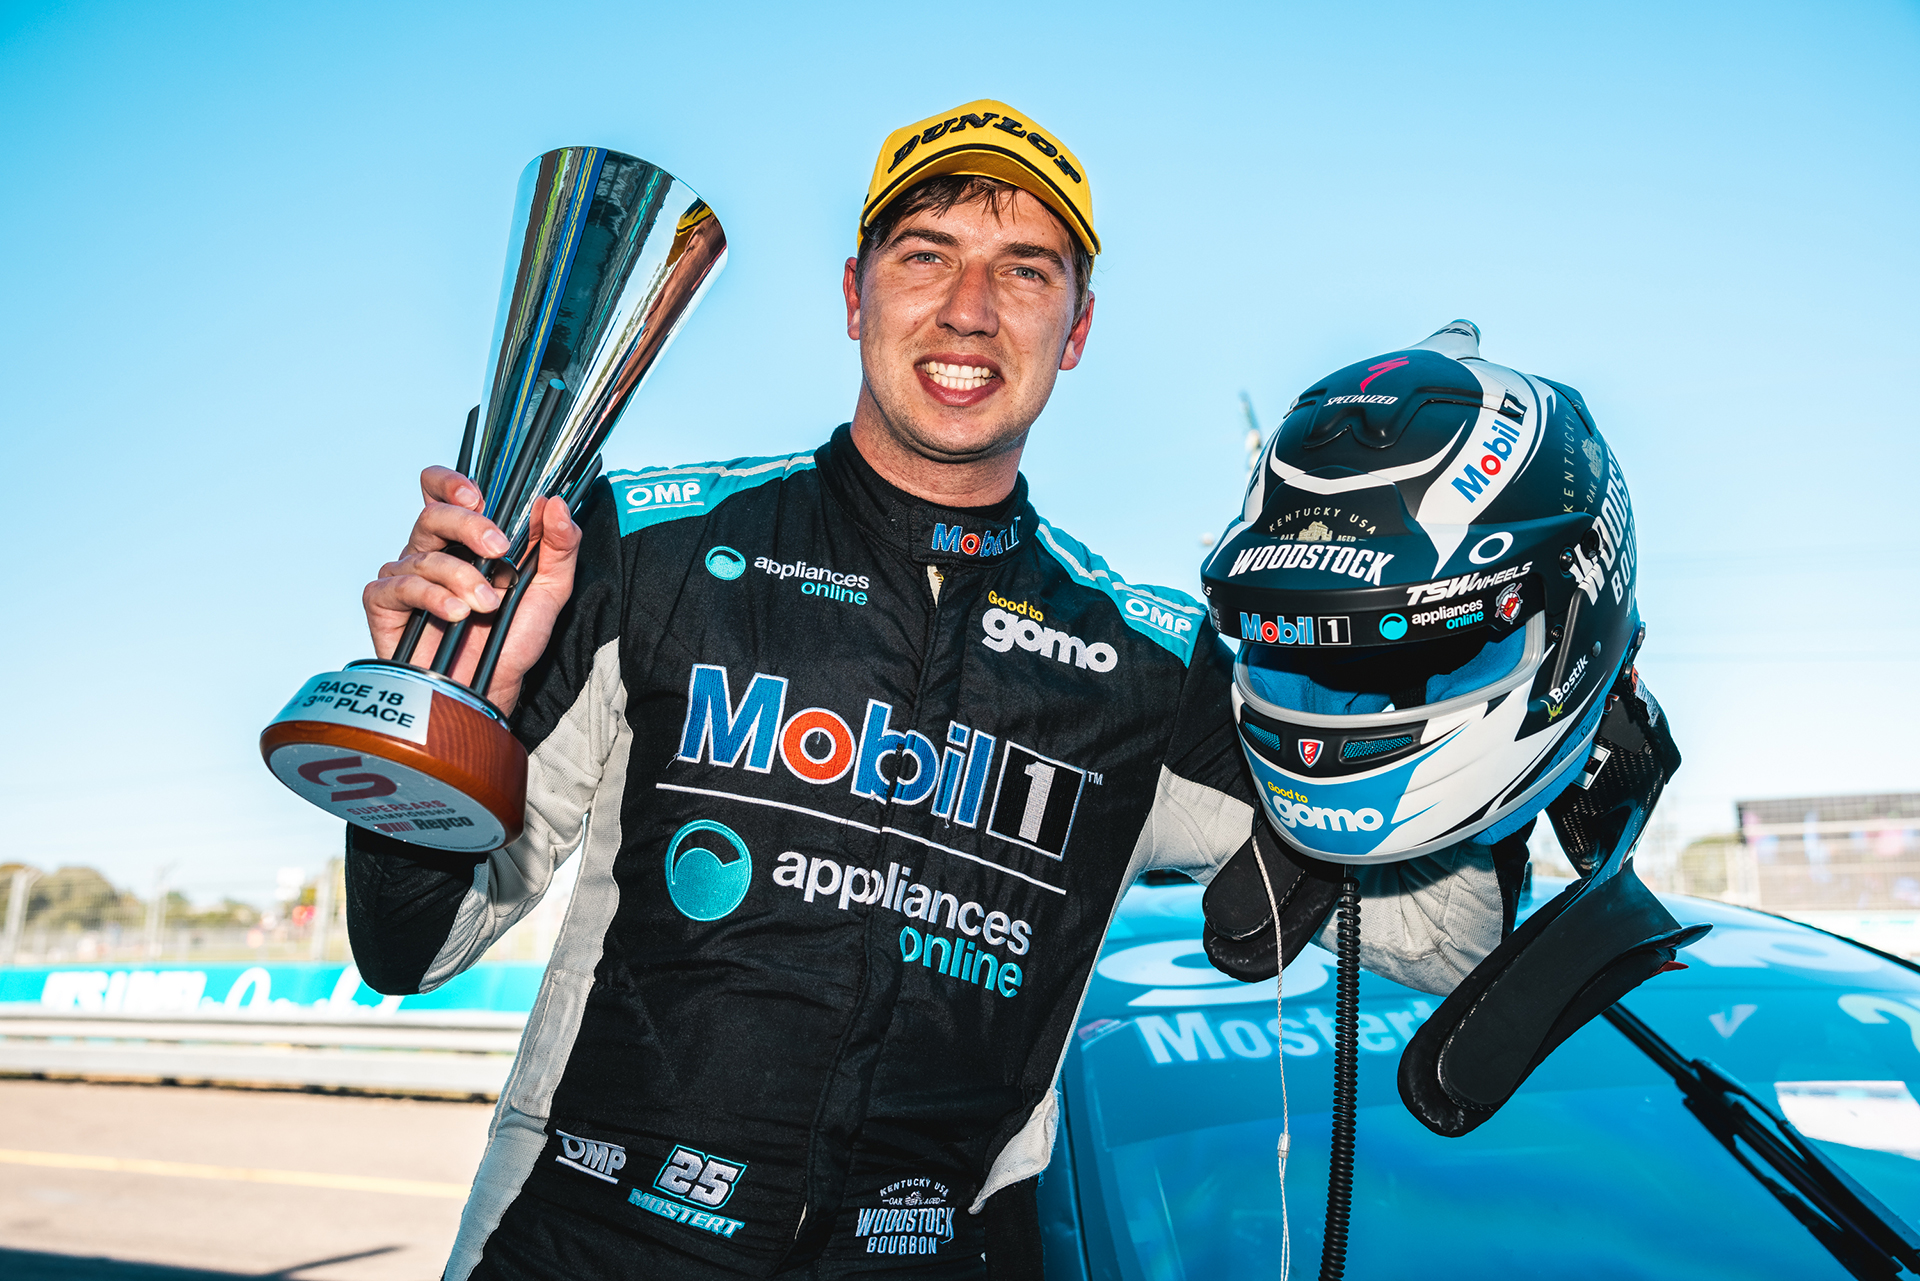 Mostert claimed two podiums over the weekend.